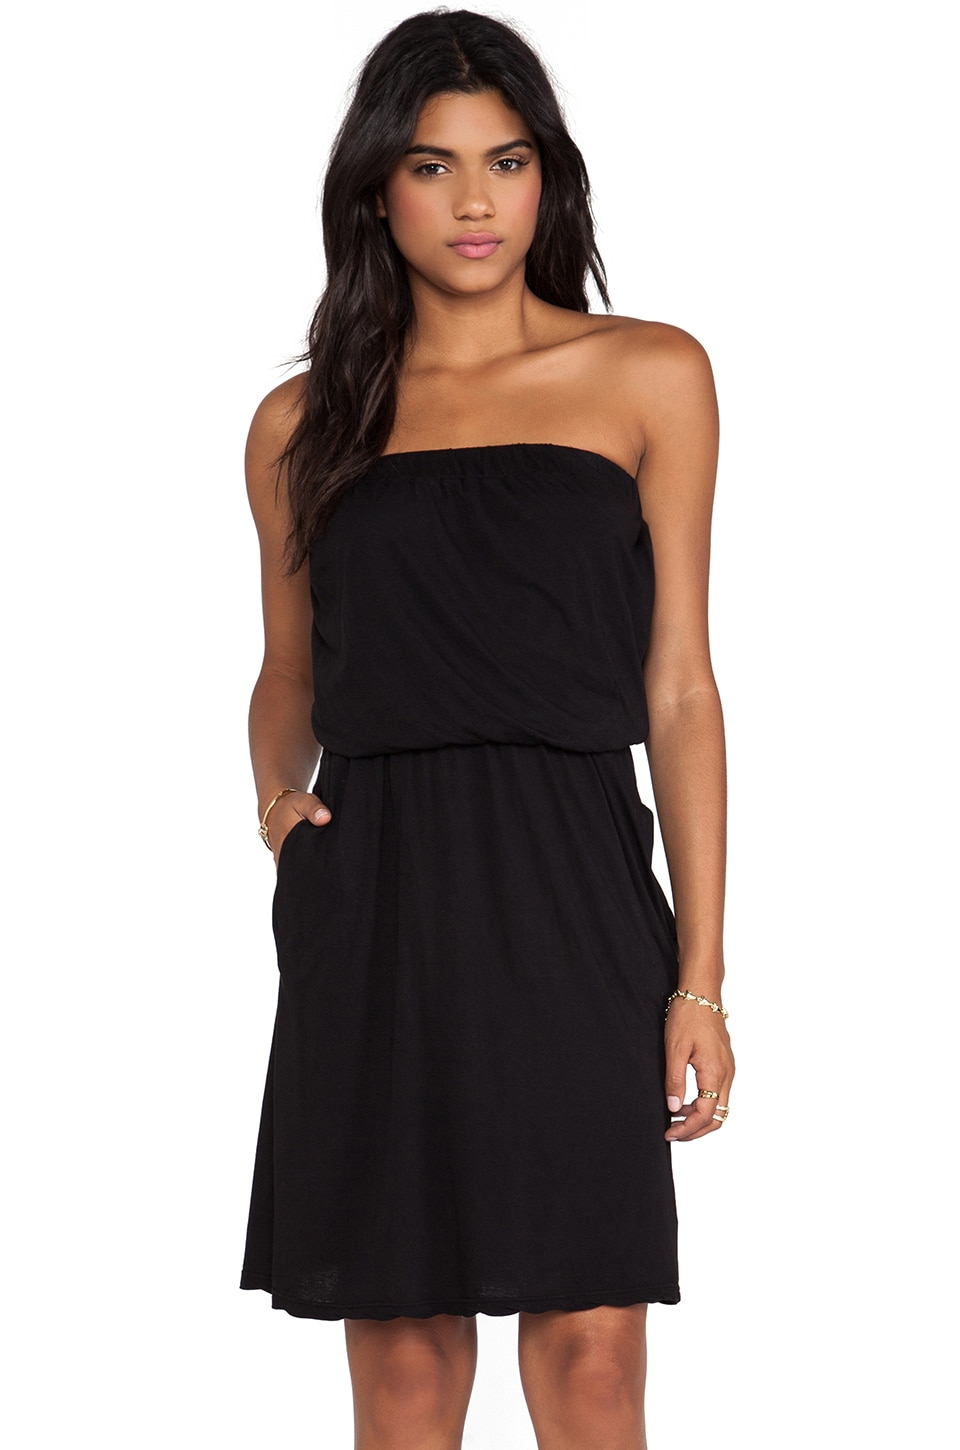 Velvet by Graham & Spencer Svetlana Sheer Jersey Dress in Black